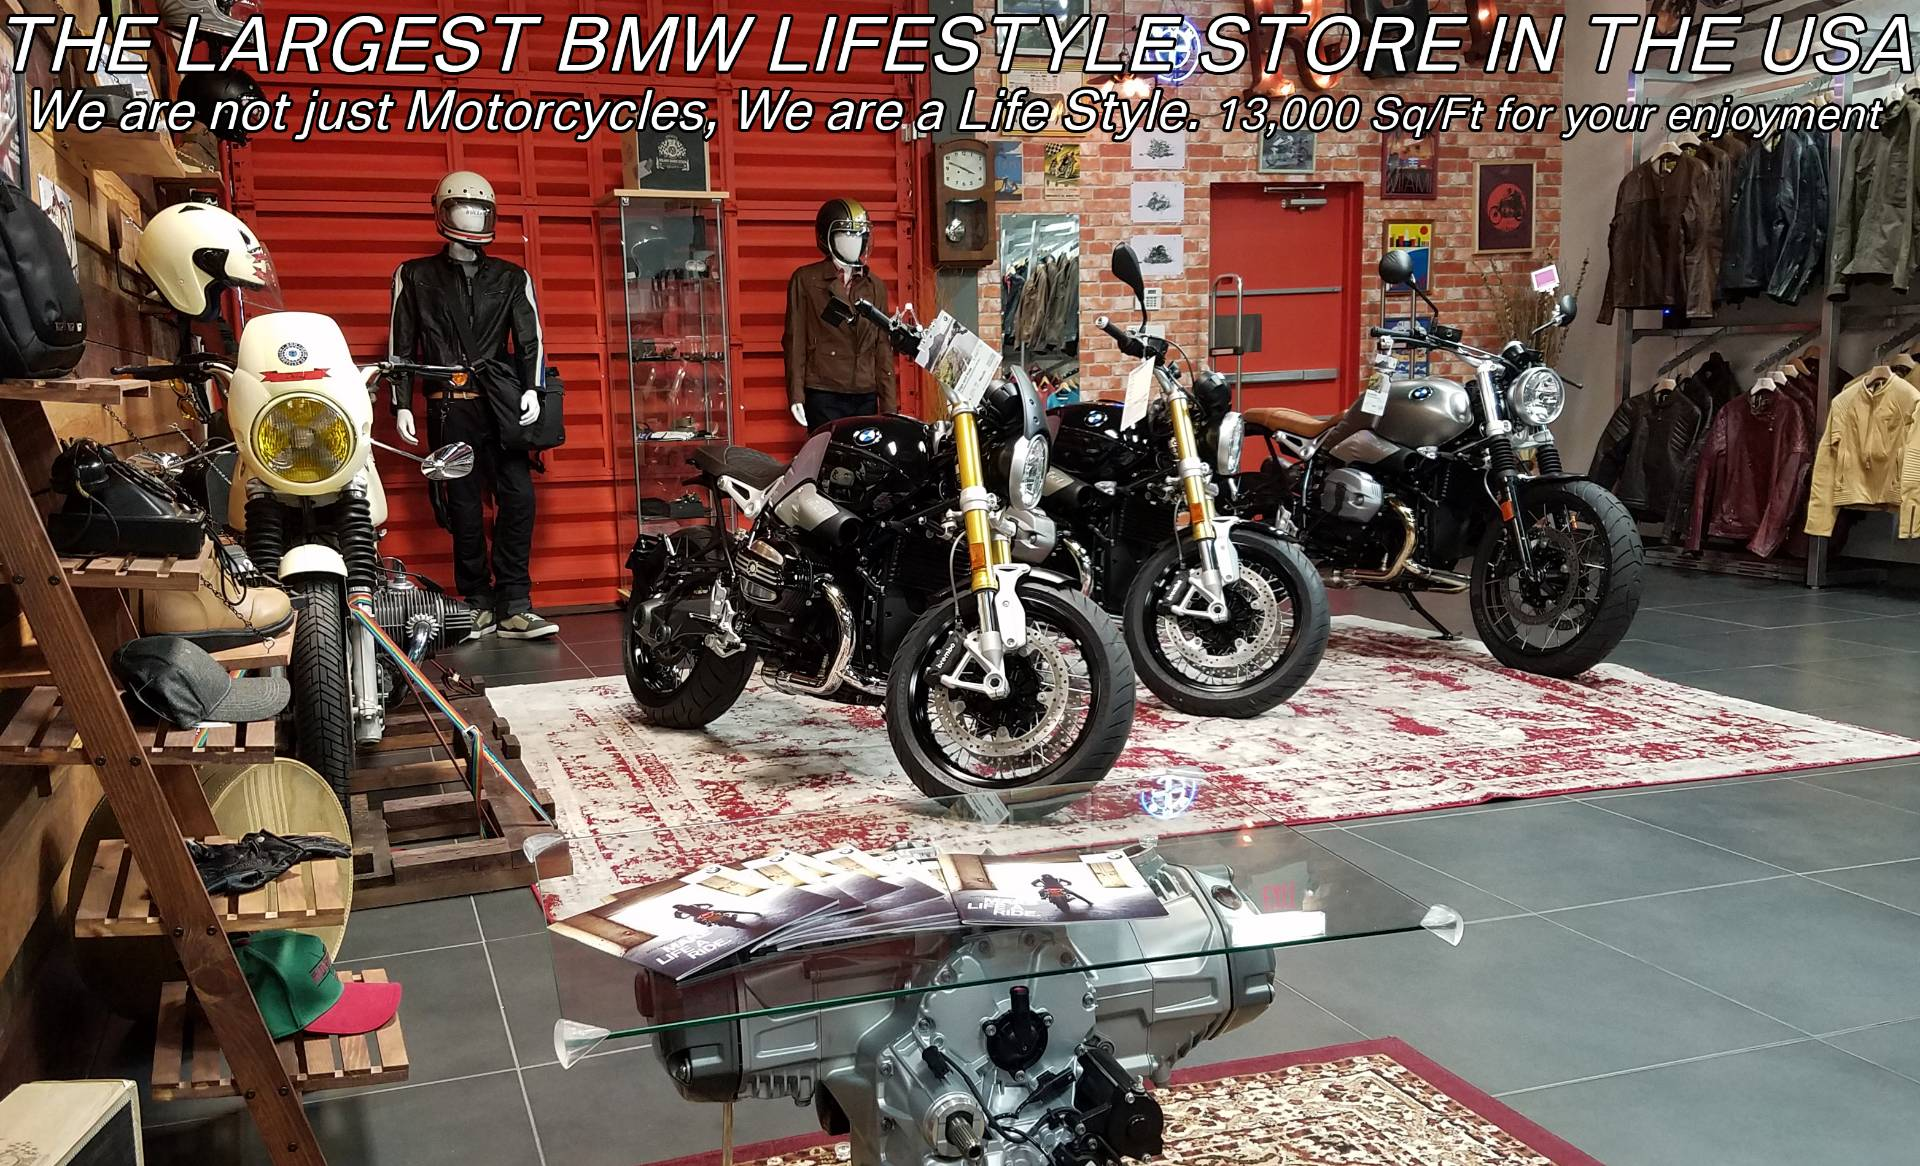 New 2019 BMW R nine T for sale, BMW R nineT for sale, BMW Motorcycle RnineT, BMW Motorcycles of Miami, Motorcycles of Miami, Motorcycles Miami - Photo 25